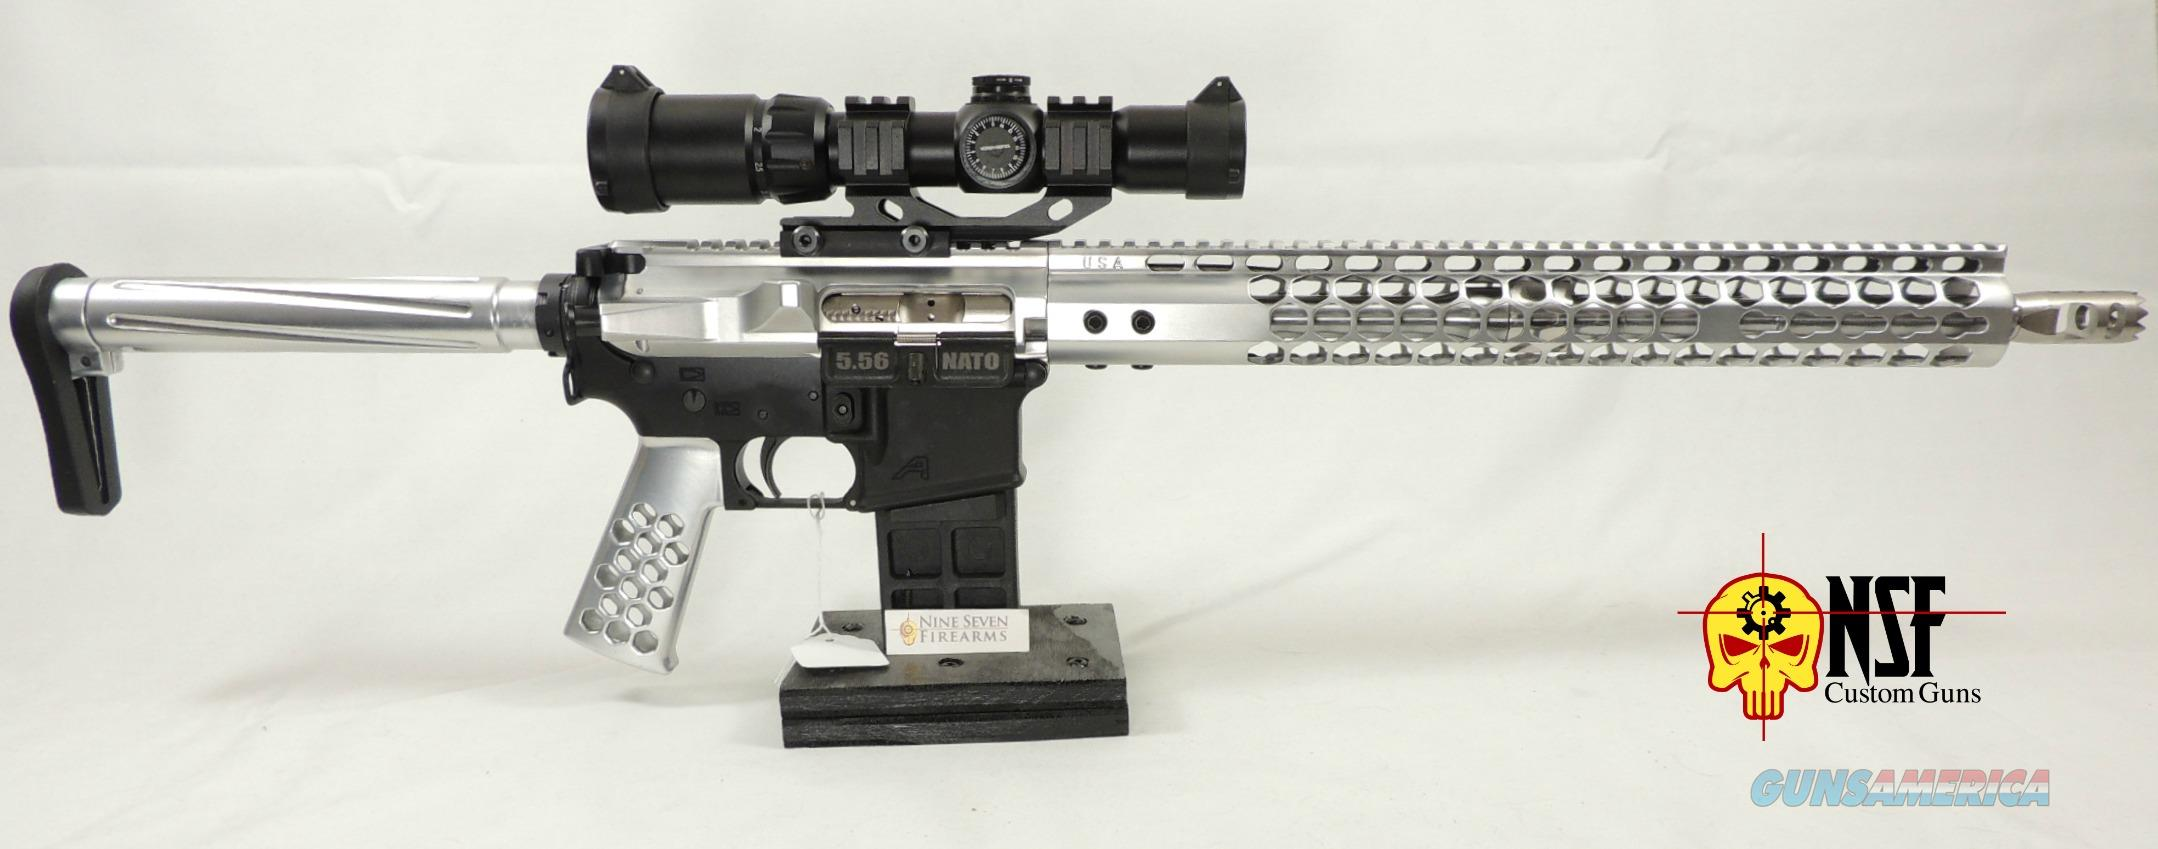 NSF Custom Guns Polished Aluminum AR-15 Stainless Barrel  Guns > Rifles > AR-15 Rifles - Small Manufacturers > Complete Rifle